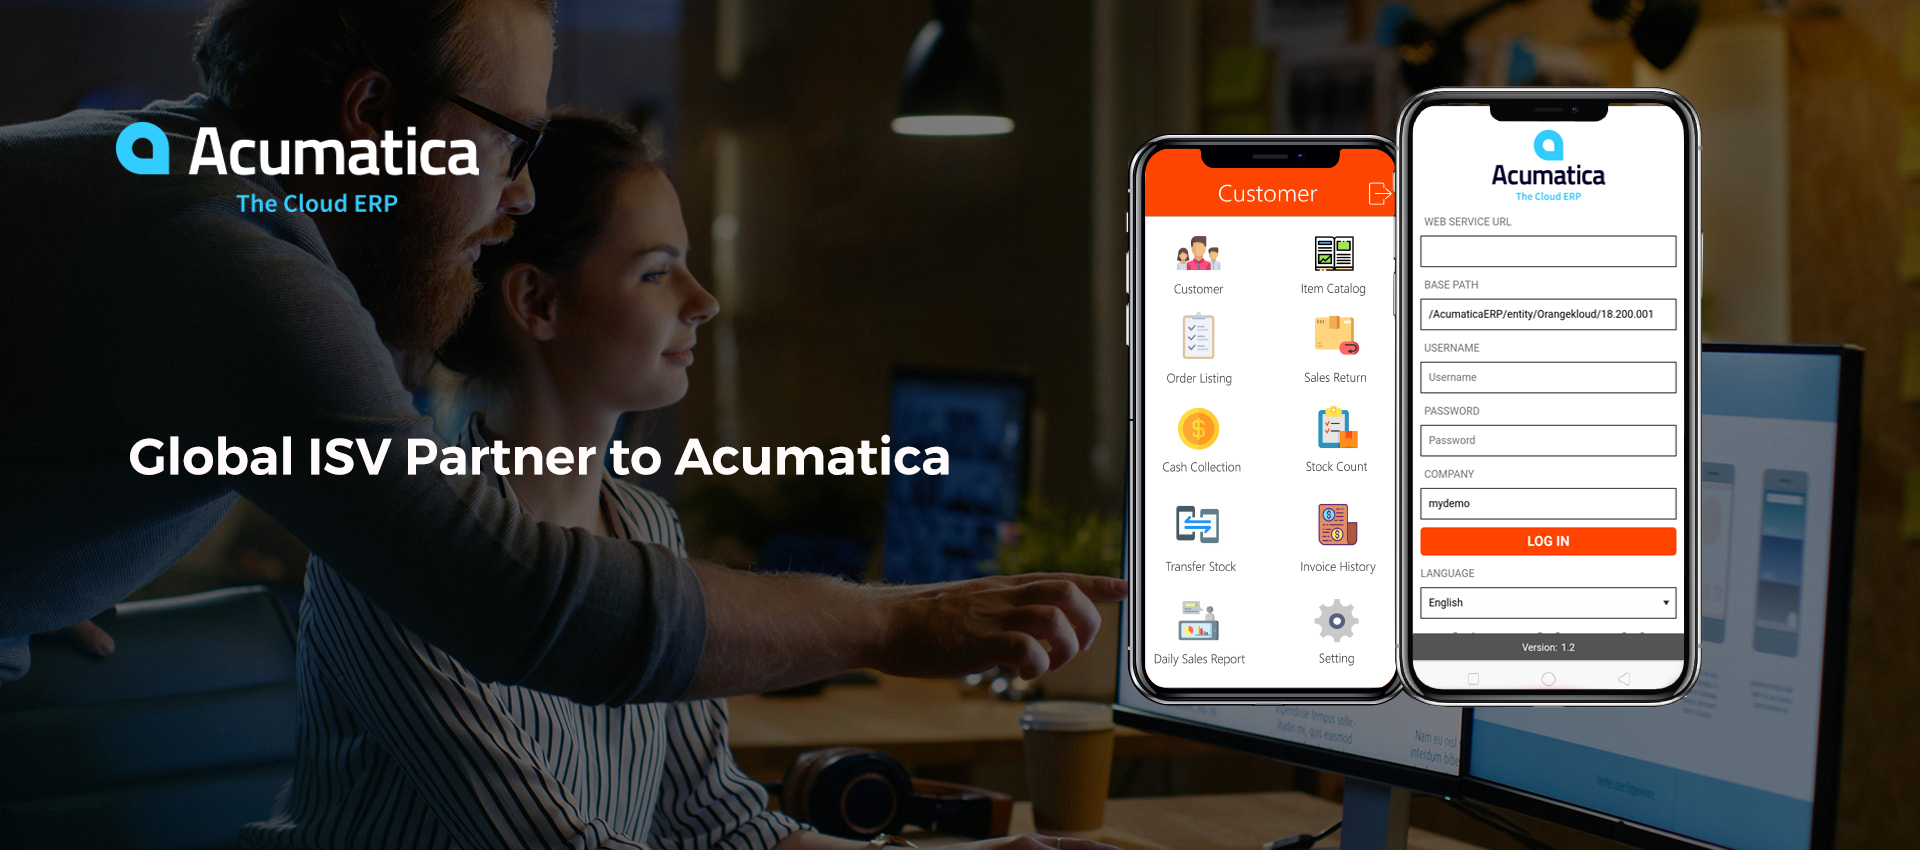 Global ISV Partner to Acumatica